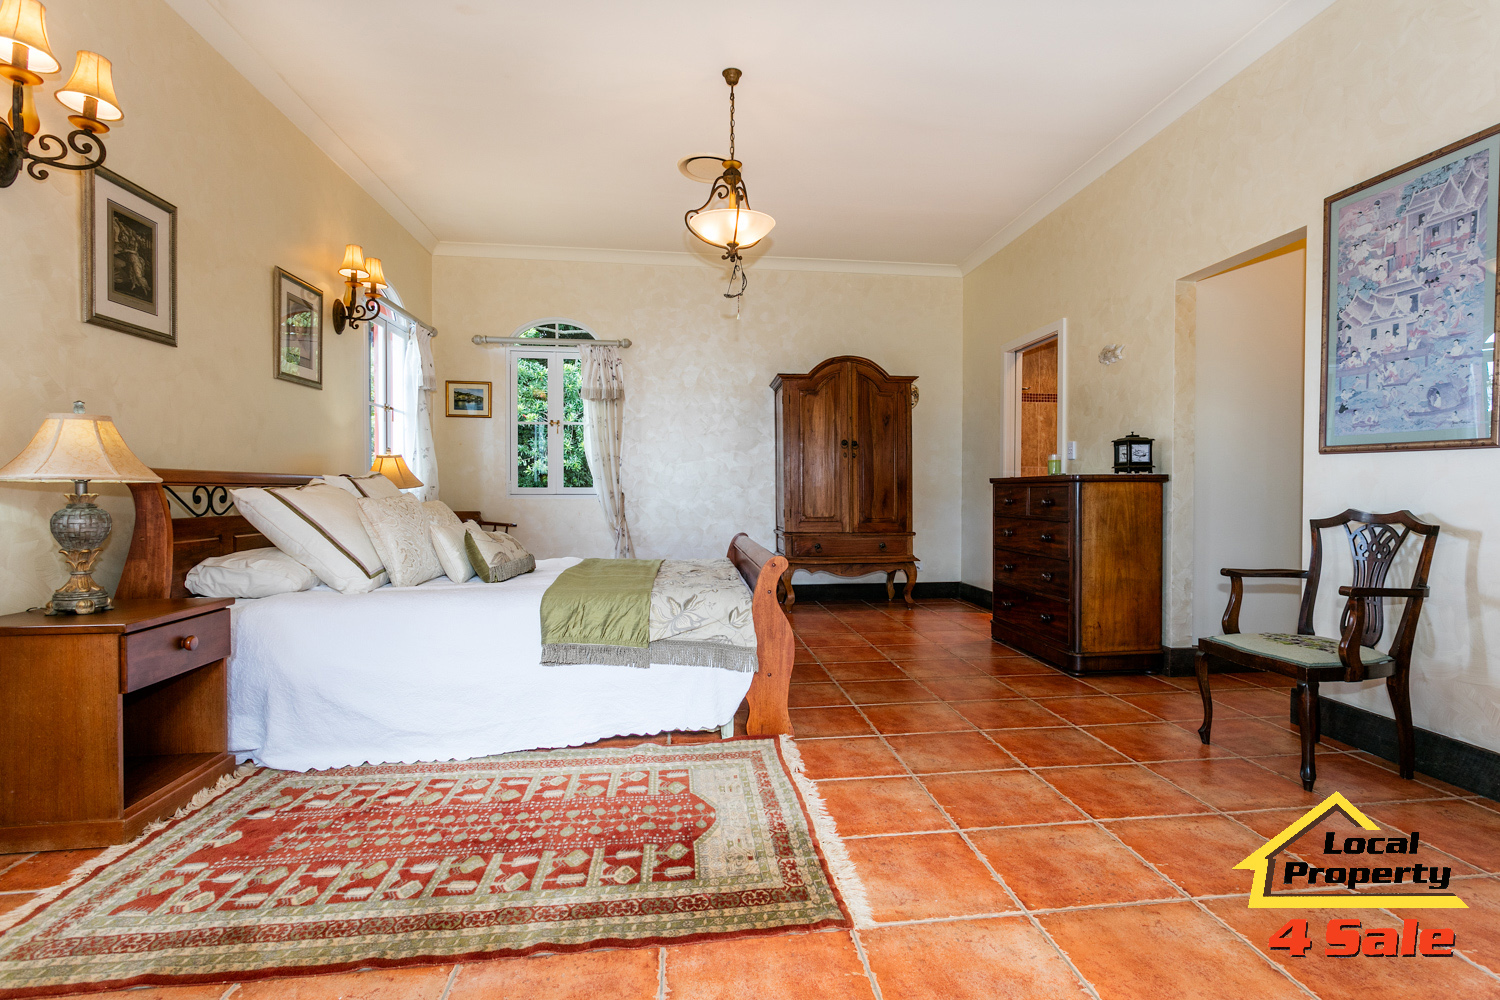 182 Long Rd Tamborine Mountain - Bedroom 4 a